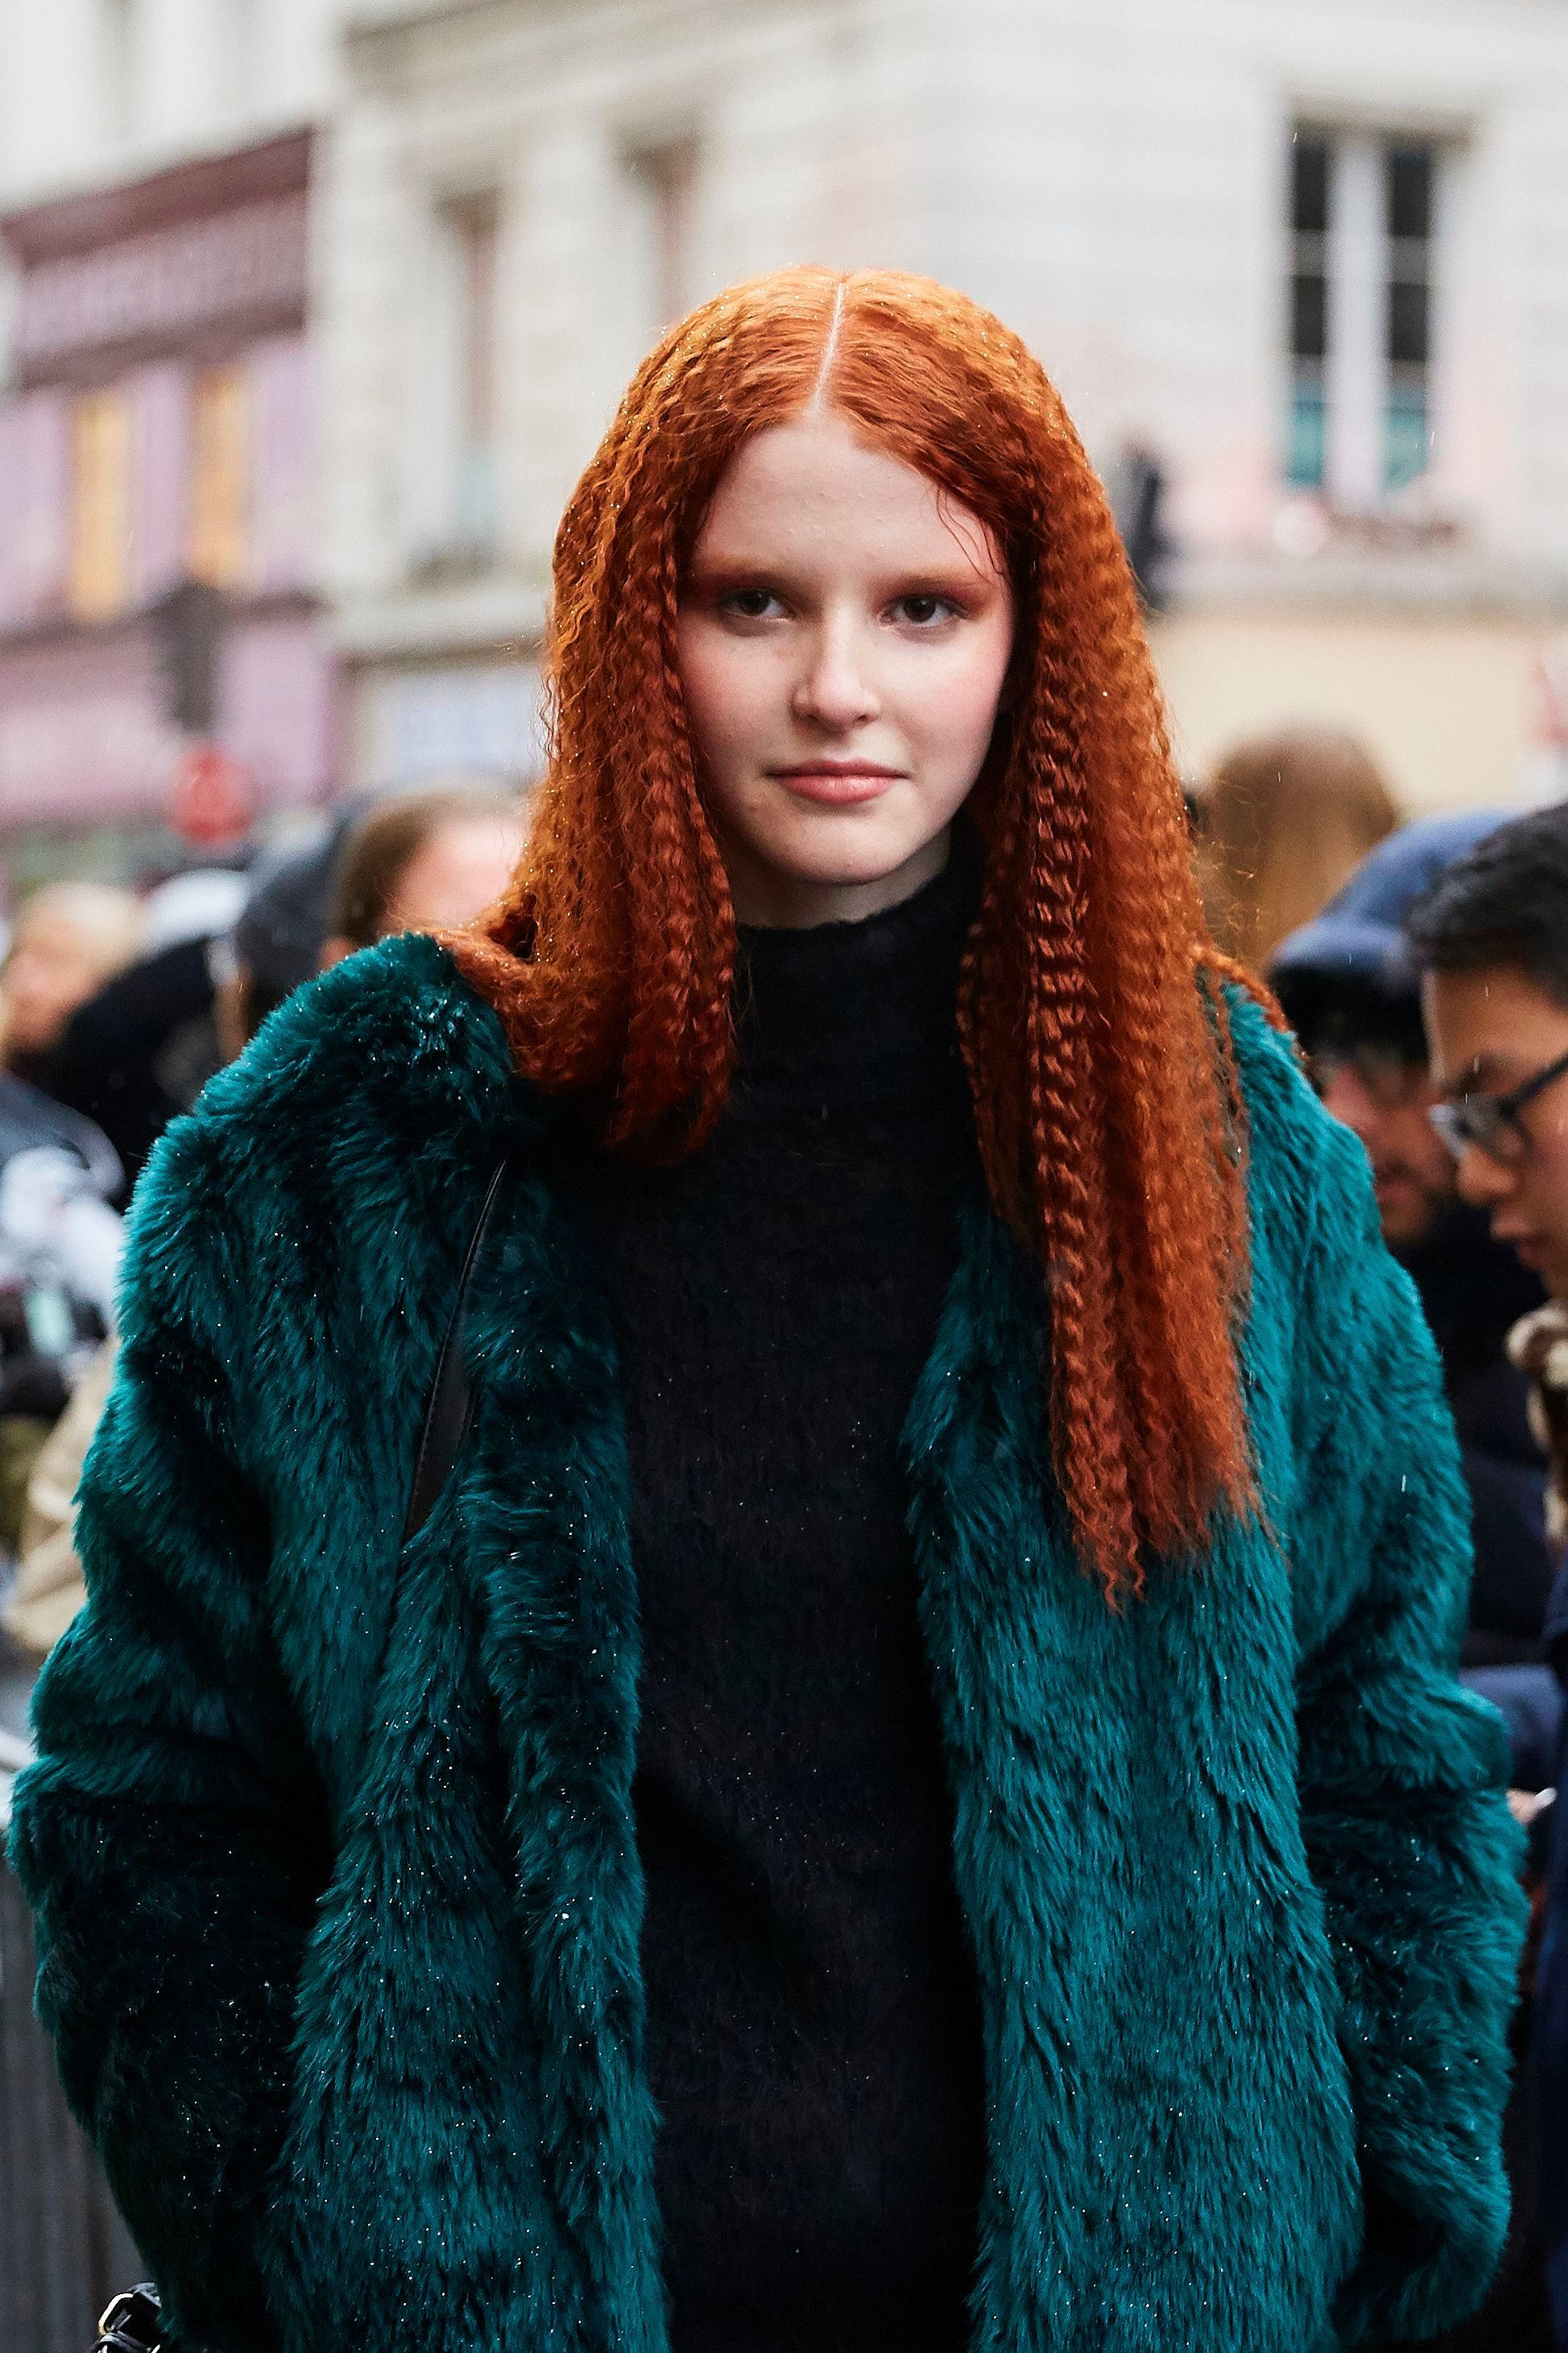 Hair trends 2019: Street style of woman with dark copper long crimped hair wearing a dark green coat.